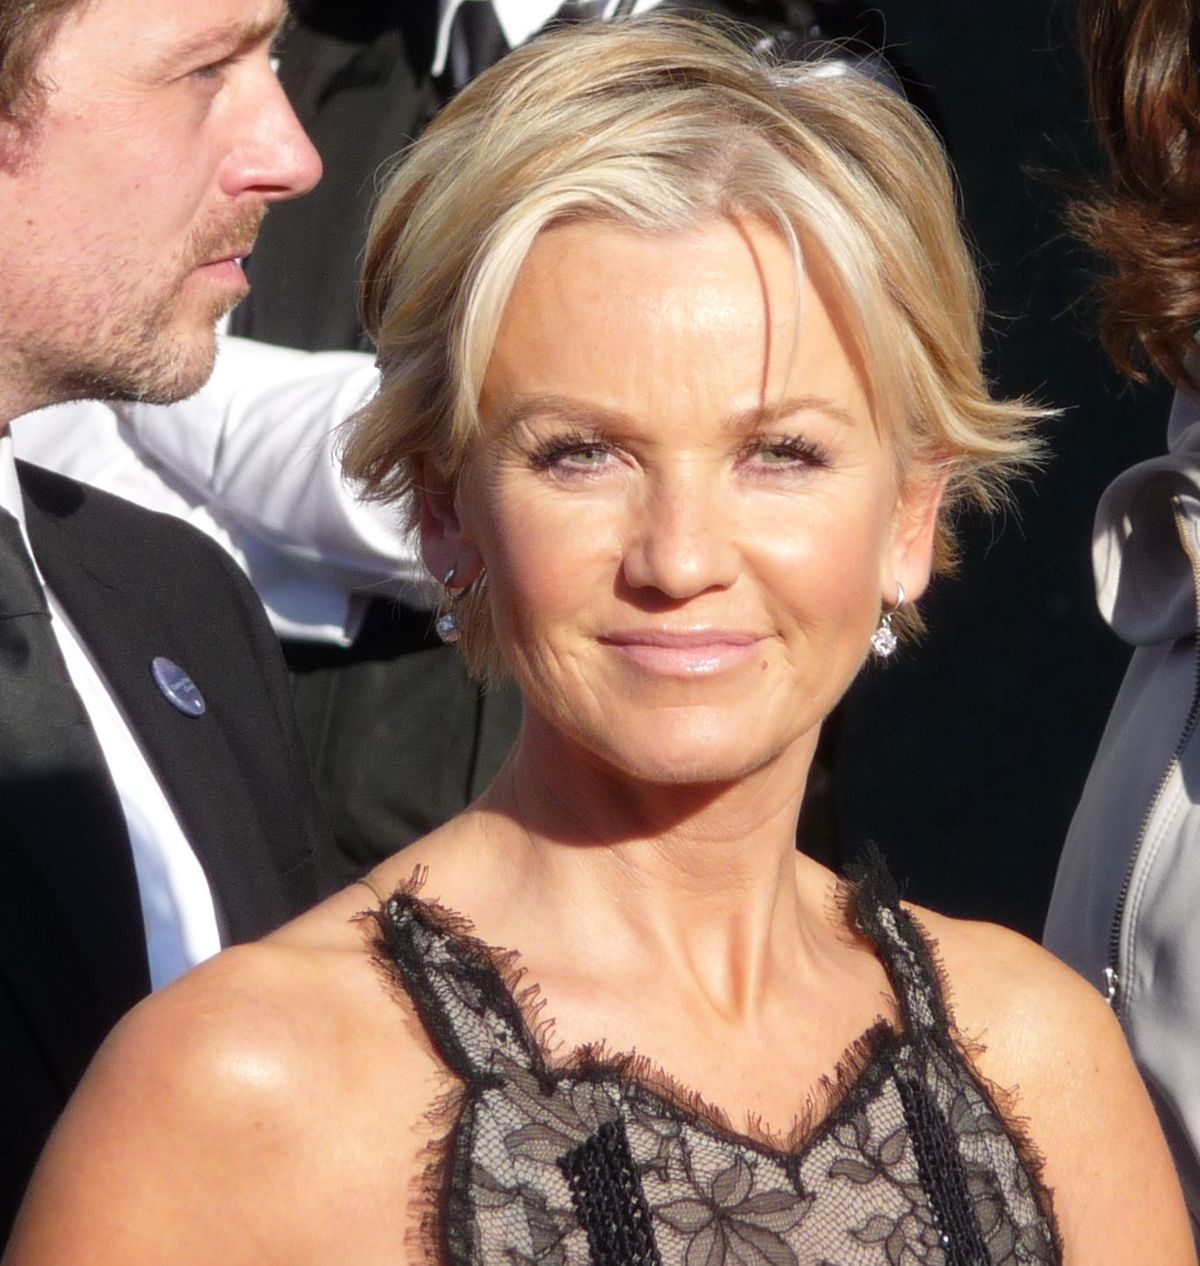 Lisa Maxwell (actress) - Wikipedia